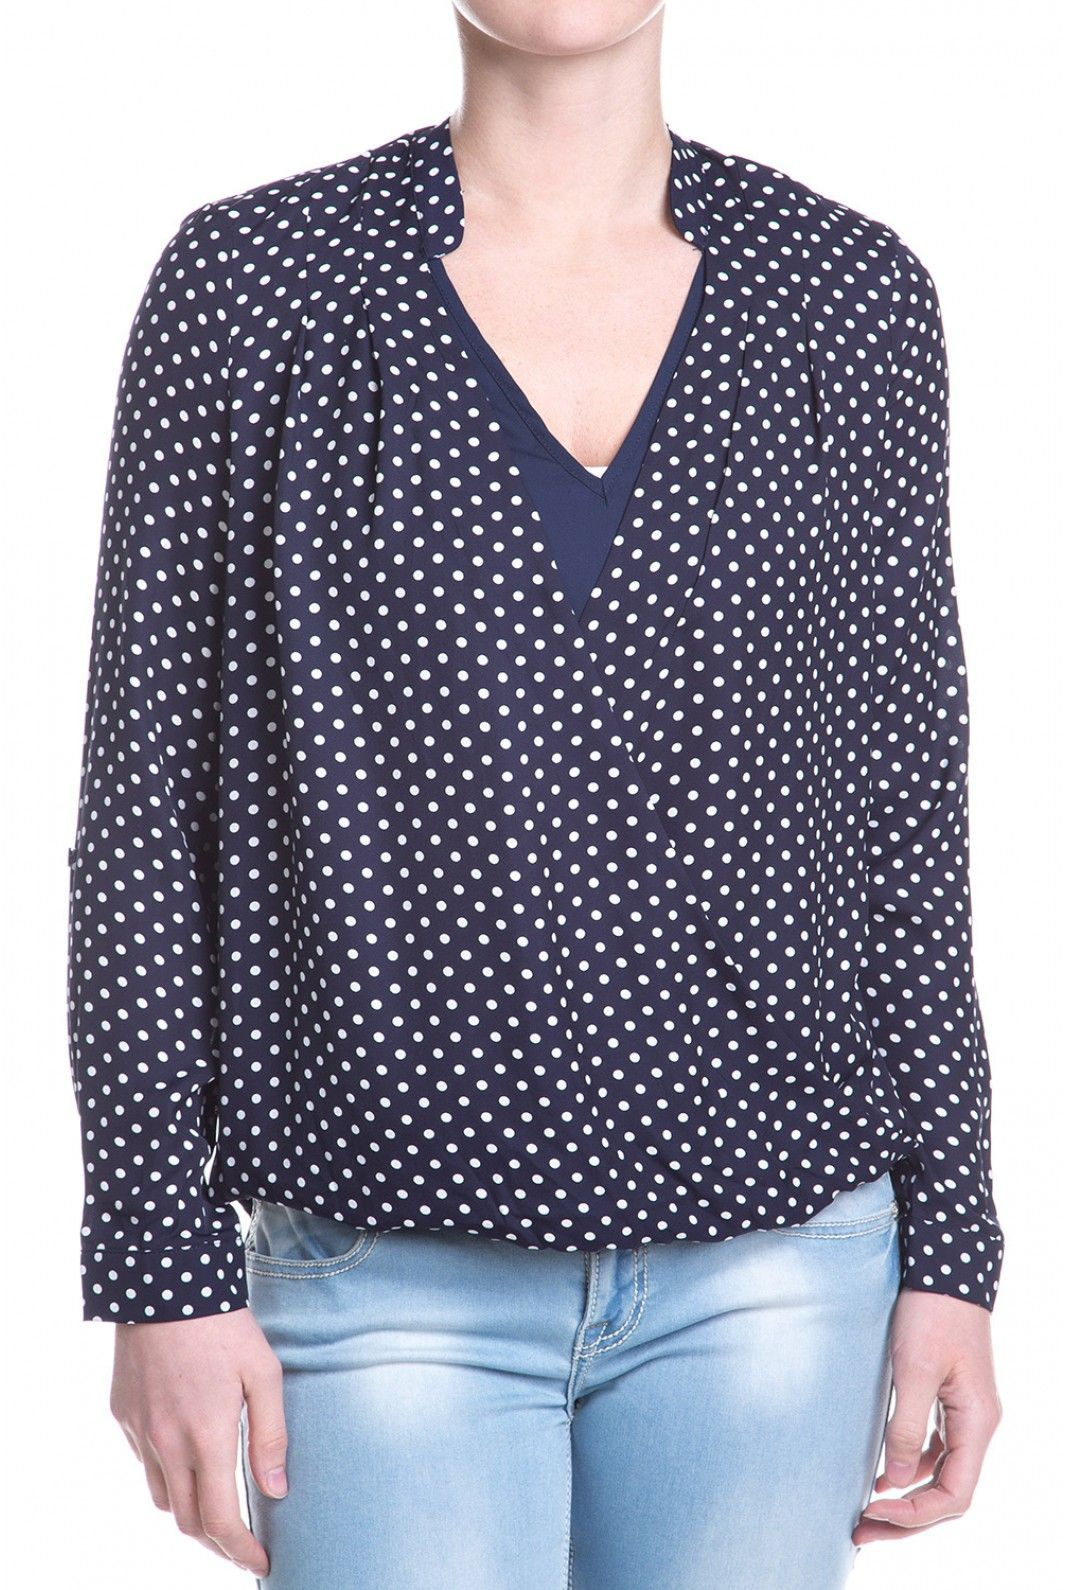 You love getting all wrapped up in an idea, and now you can get all wrapped up in this top. The wrap around style had the front panel lined with navy jersey knit, while the sleeves give you the option of buttoning them up to